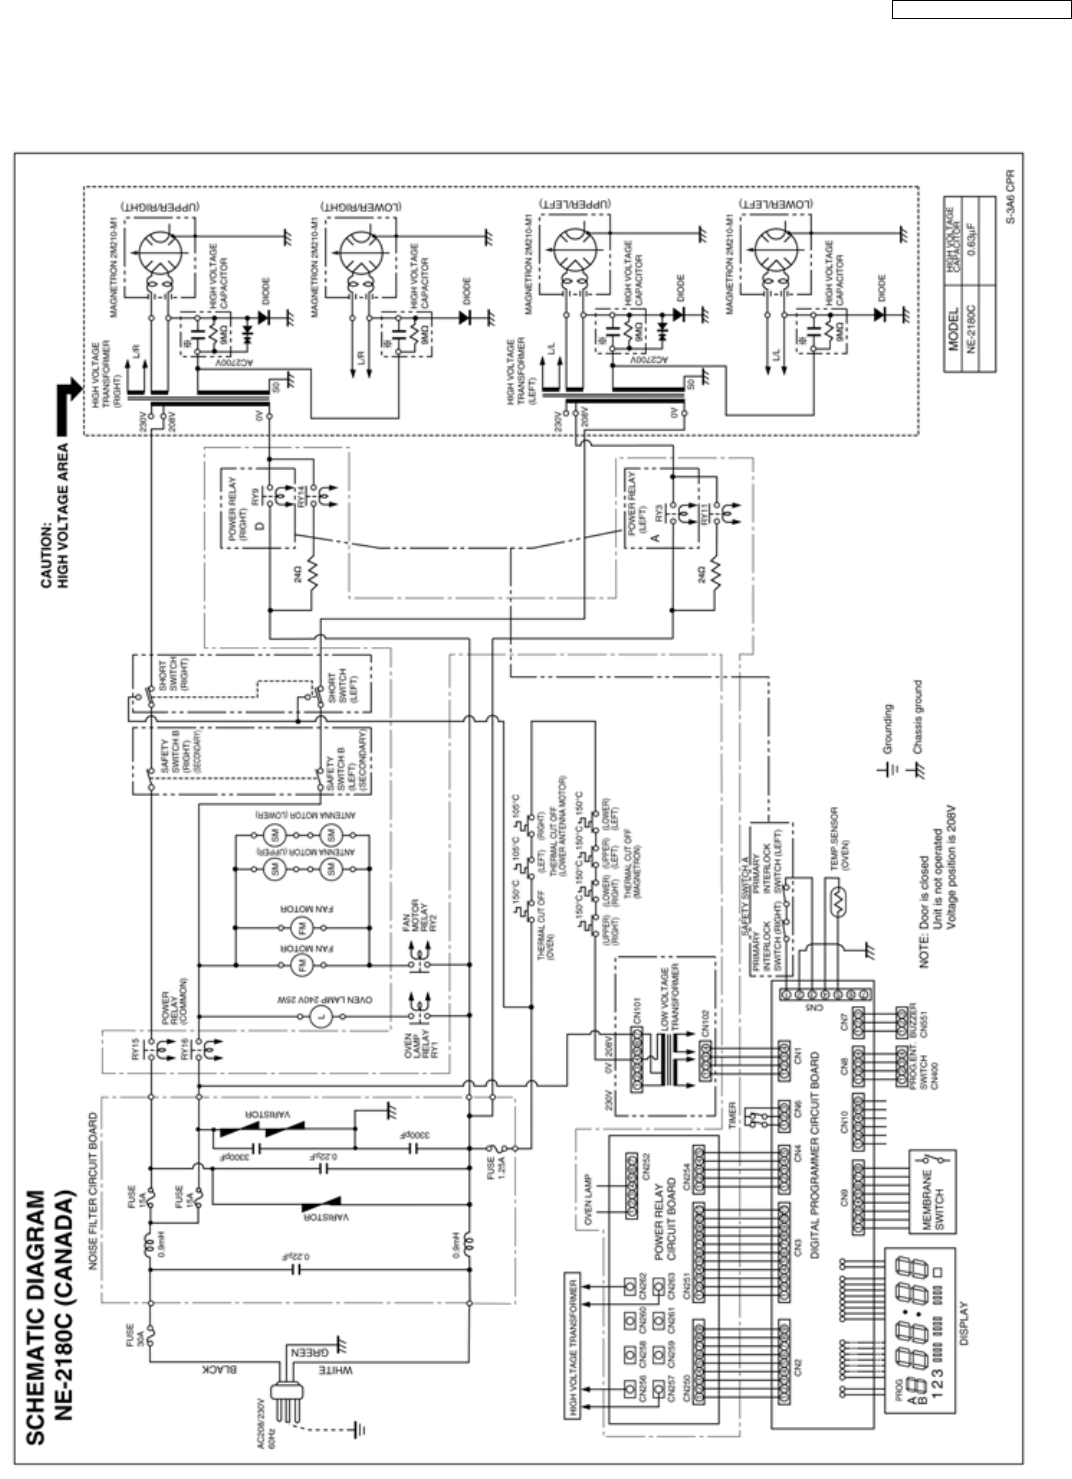 am broadcast band transmitter schematic